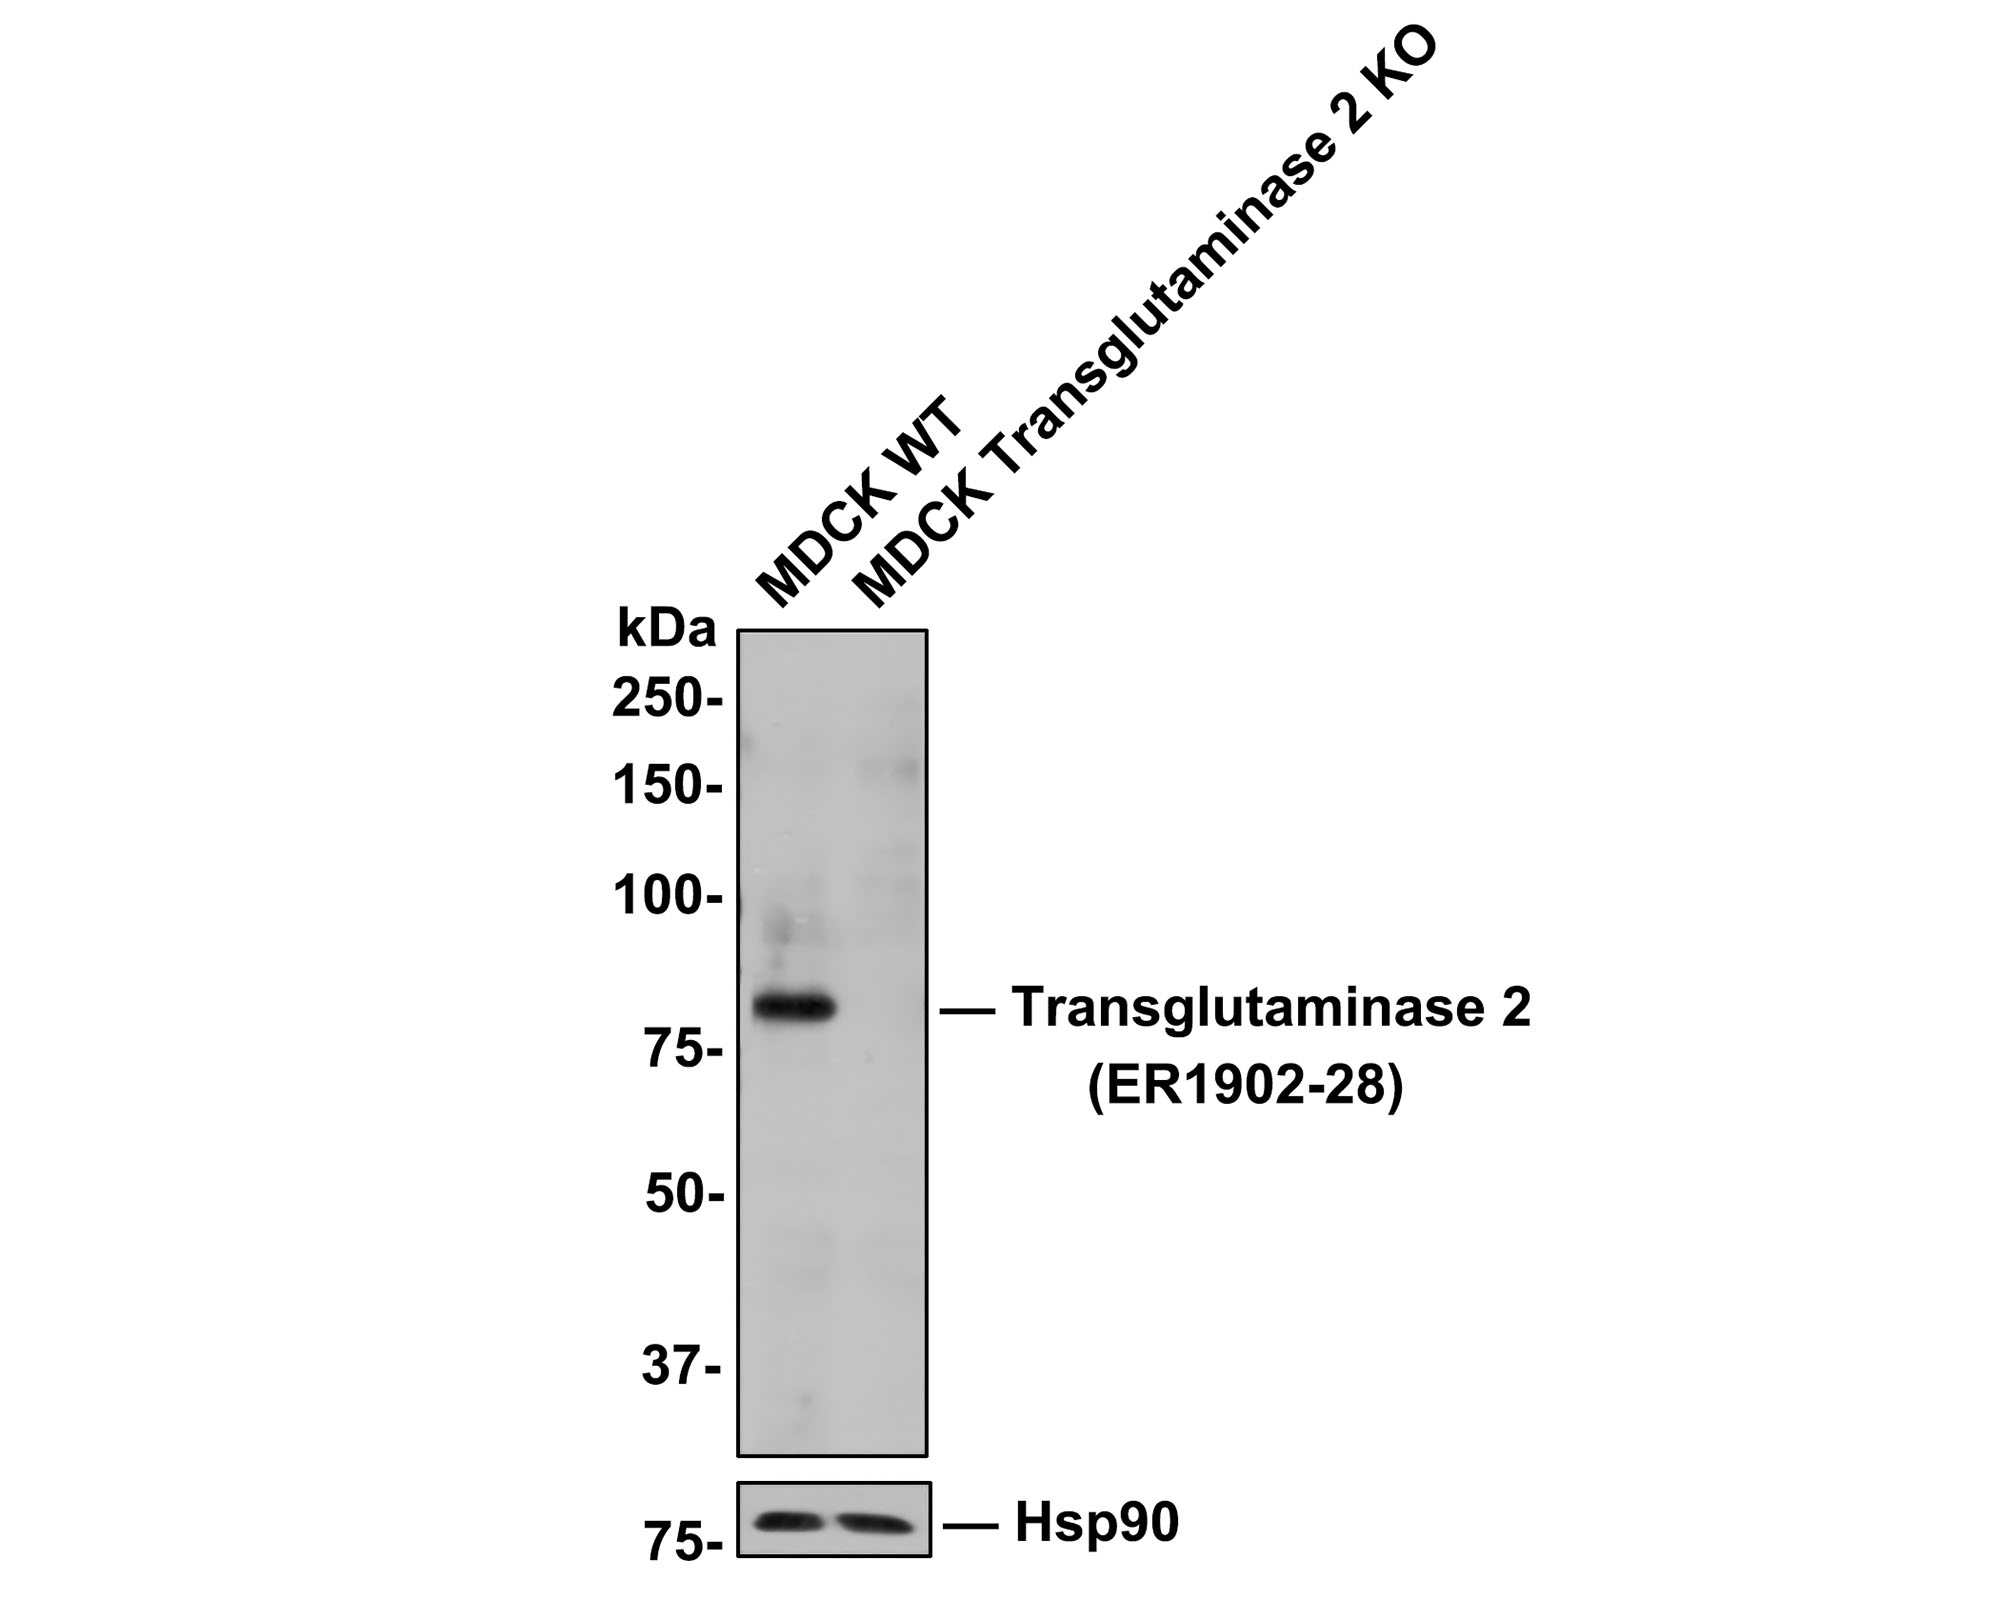 ICC staining of Transglutaminase 2 in HUVEC cells (green). Formalin fixed cells were permeabilized with 0.1% Triton X-100 in TBS for 10 minutes at room temperature and blocked with 1% Blocker BSA for 15 minutes at room temperature. Cells were probed with the primary antibody (ER1902-28, 1/100) for 1 hour at room temperature, washed with PBS. Alexa Fluor®488 Goat anti-Rabbit IgG was used as the secondary antibody at 1/100 dilution. The nuclear counter stain is DAPI (blue).